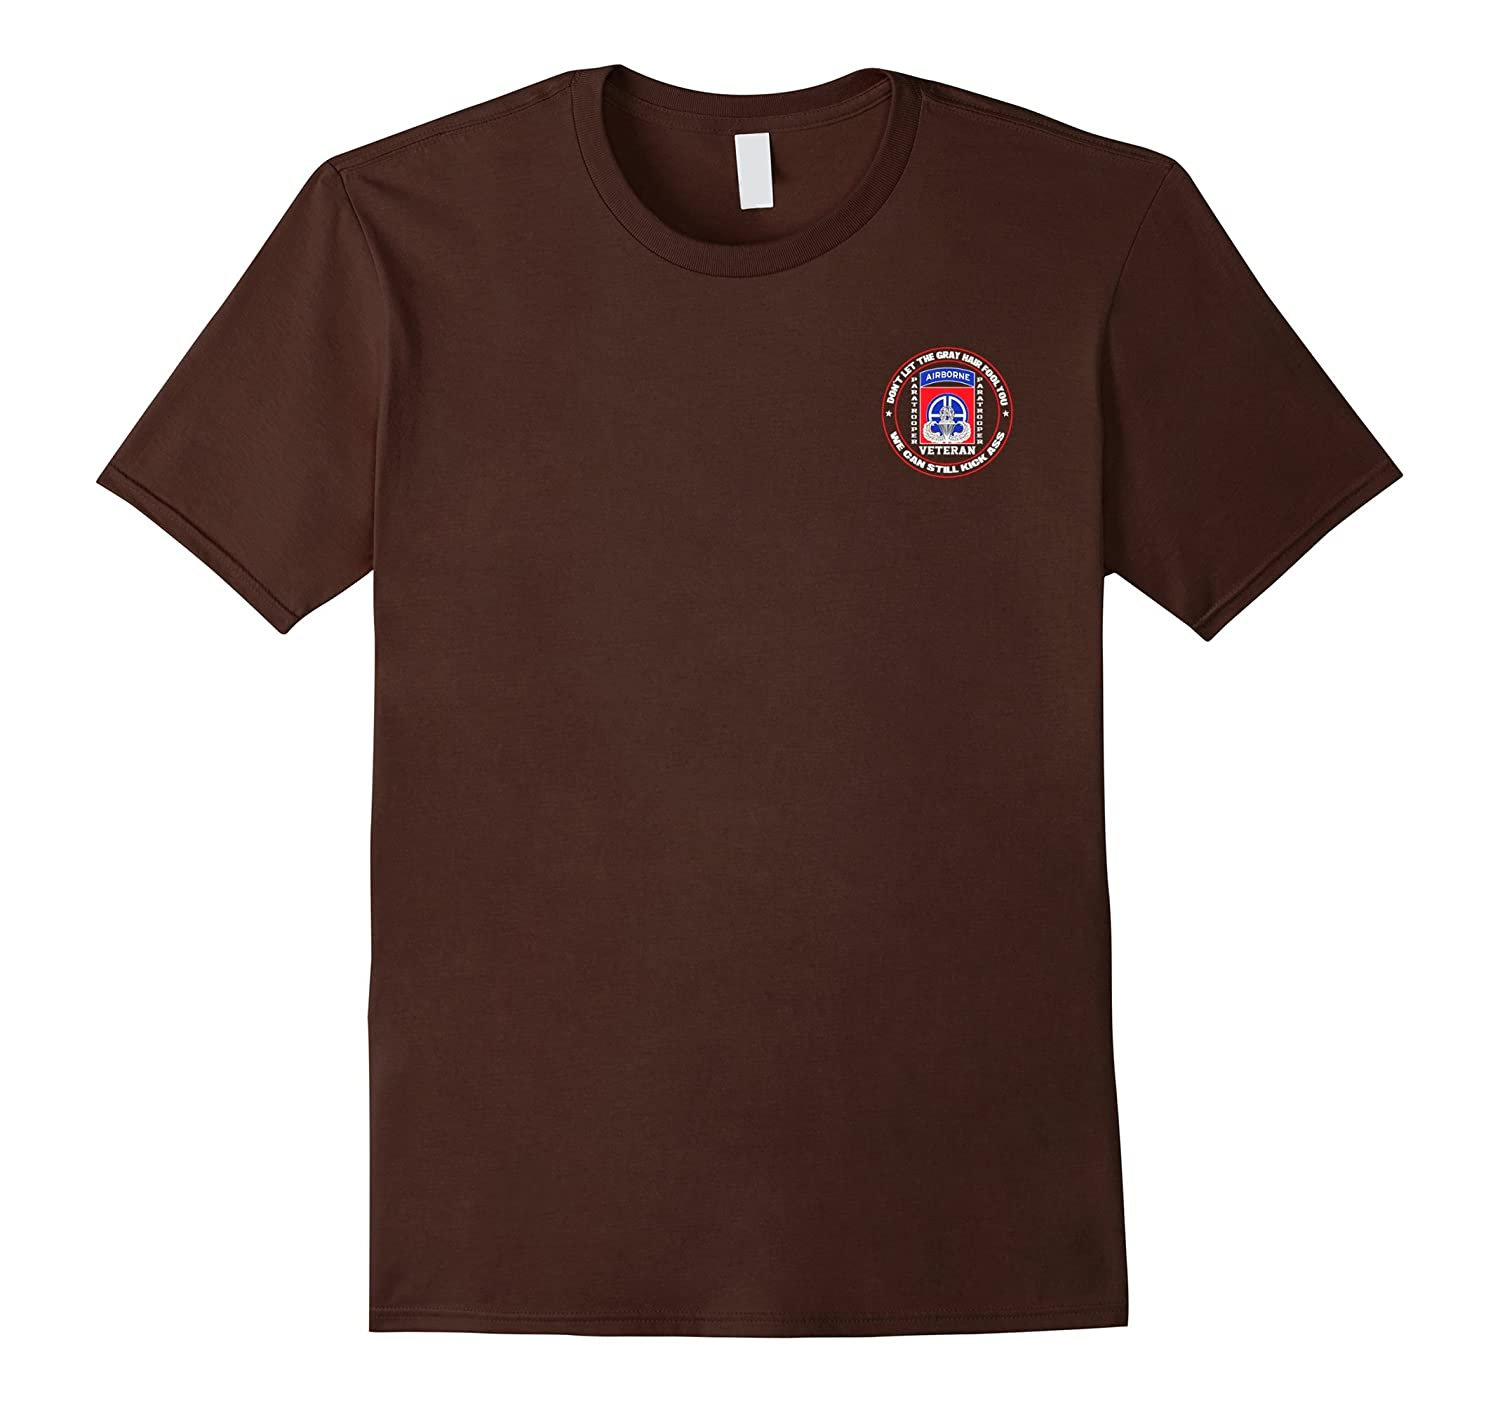 82nd Airborne Div – Don't Let The Gray Hair Fool You Tshirt